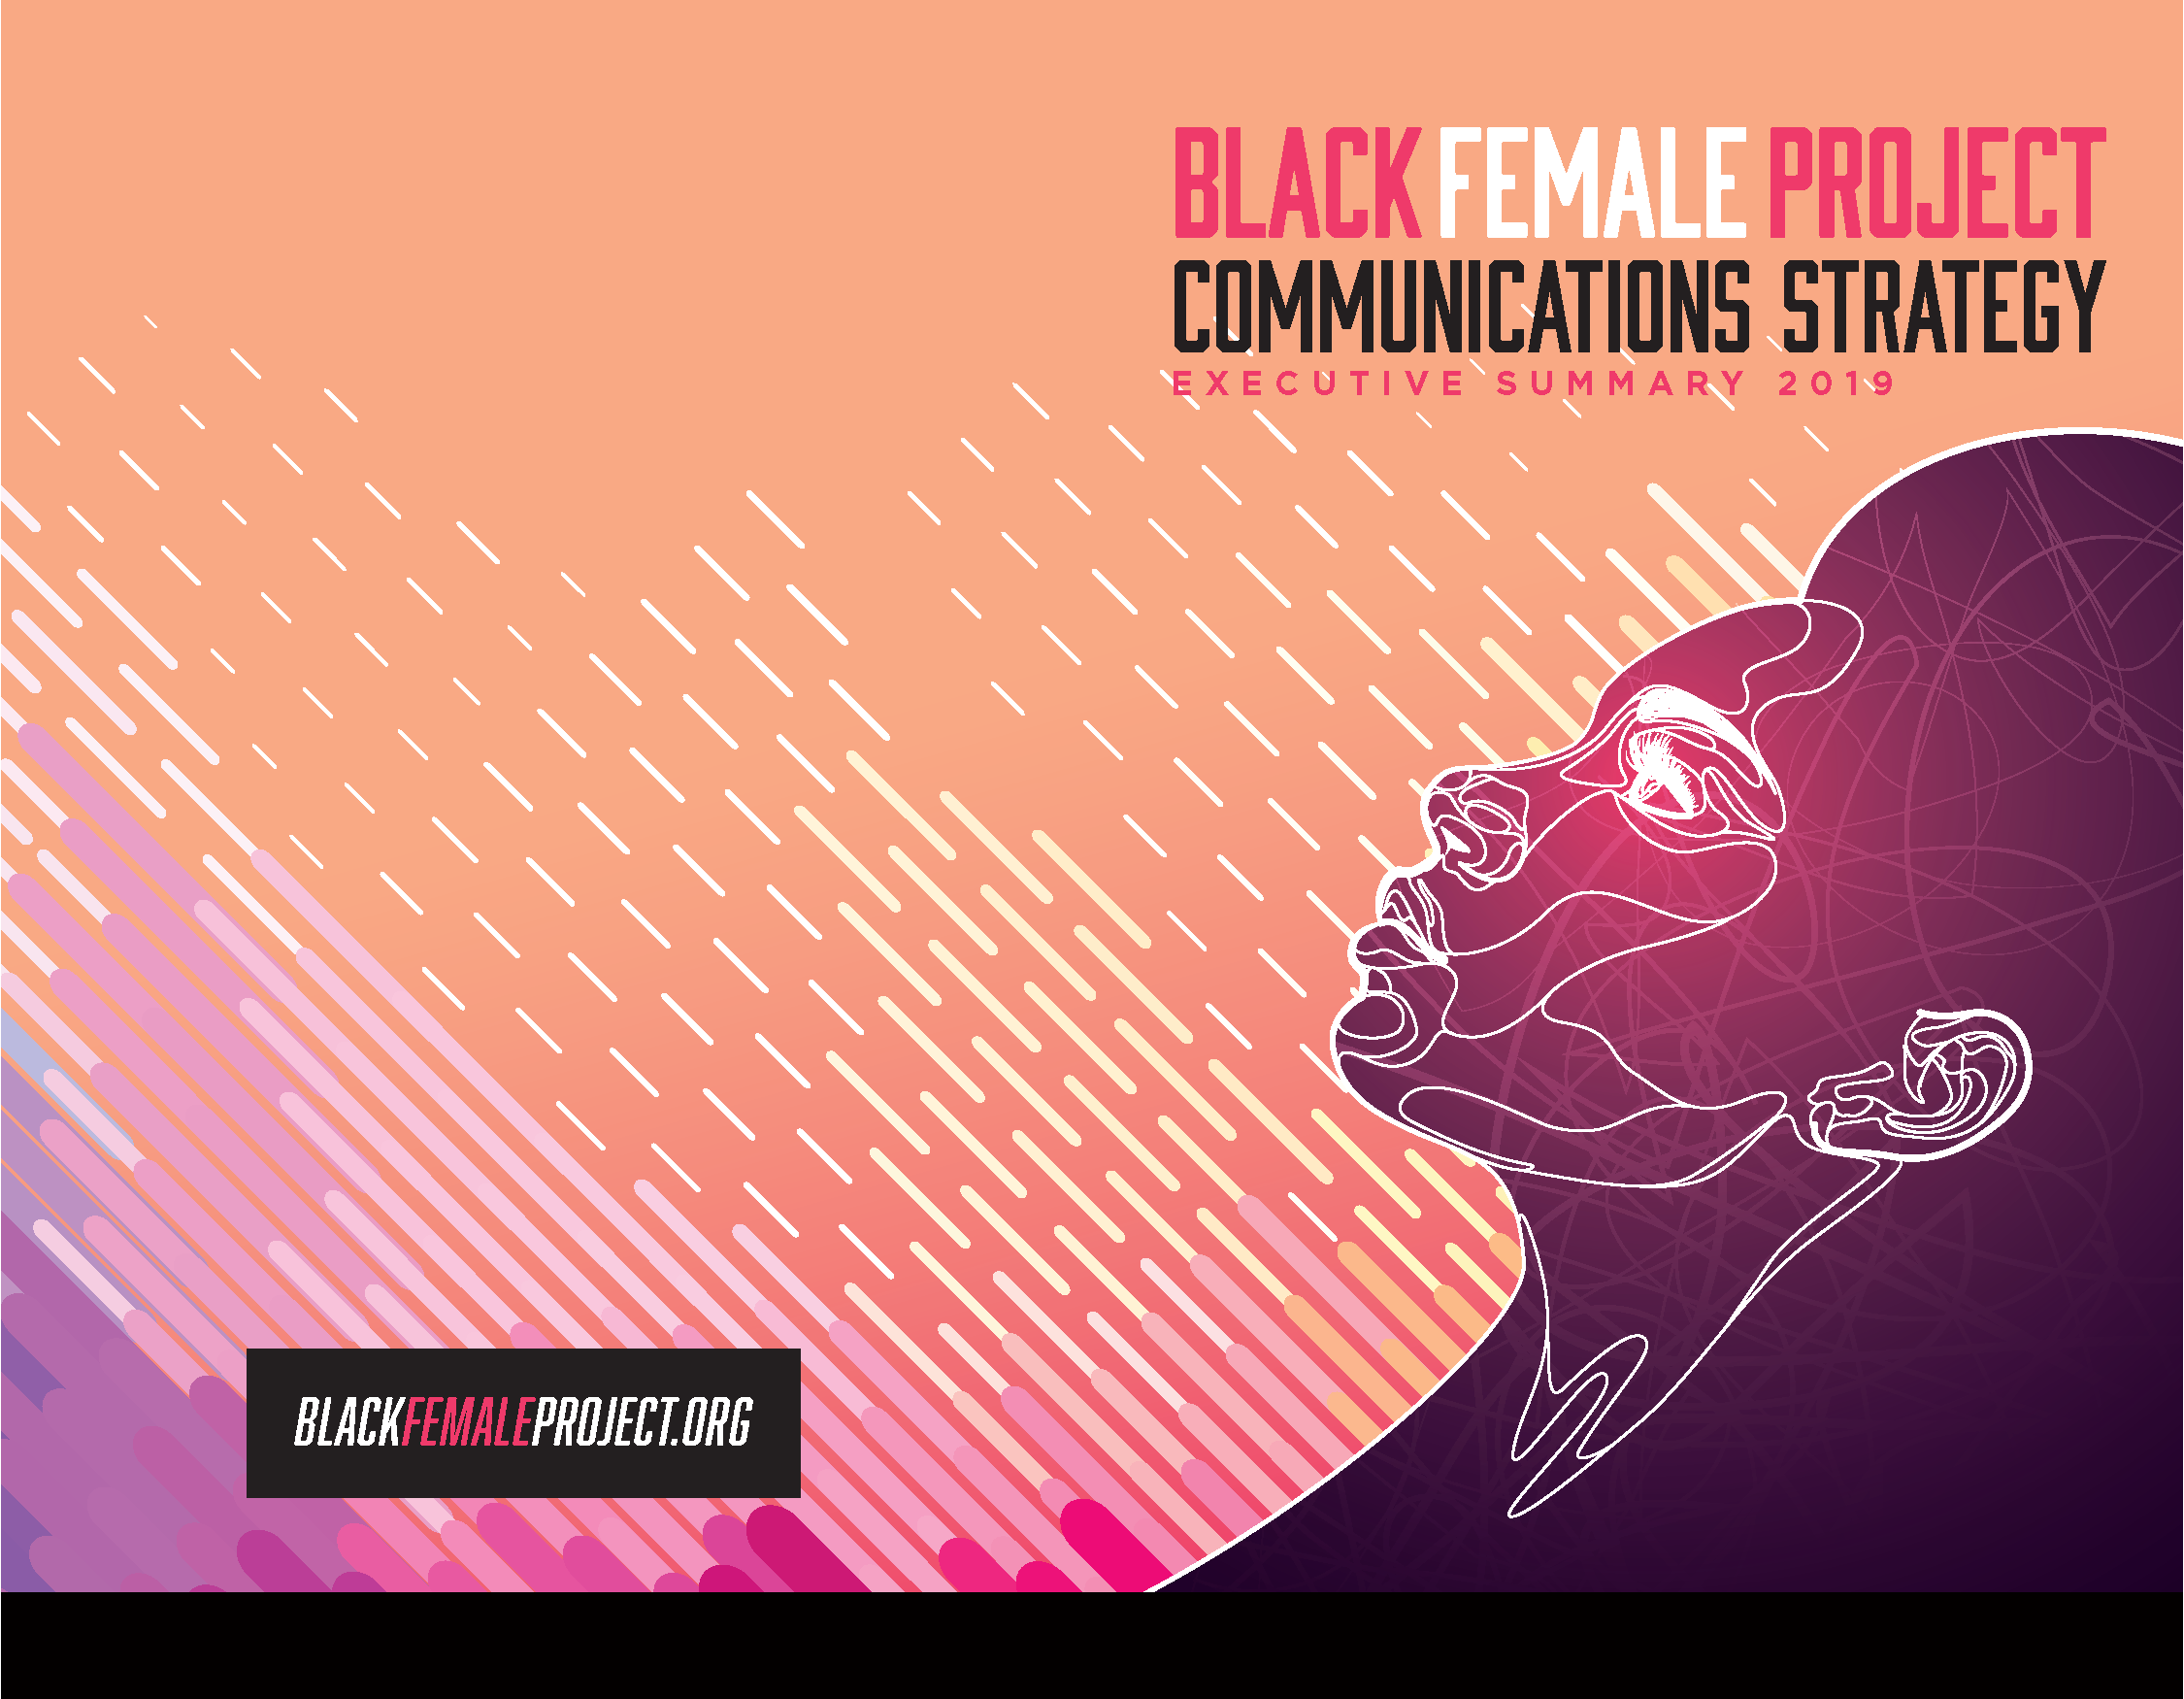 BlackFemaleProject-CommStrat-ExecSummary-2019_Page_1.png